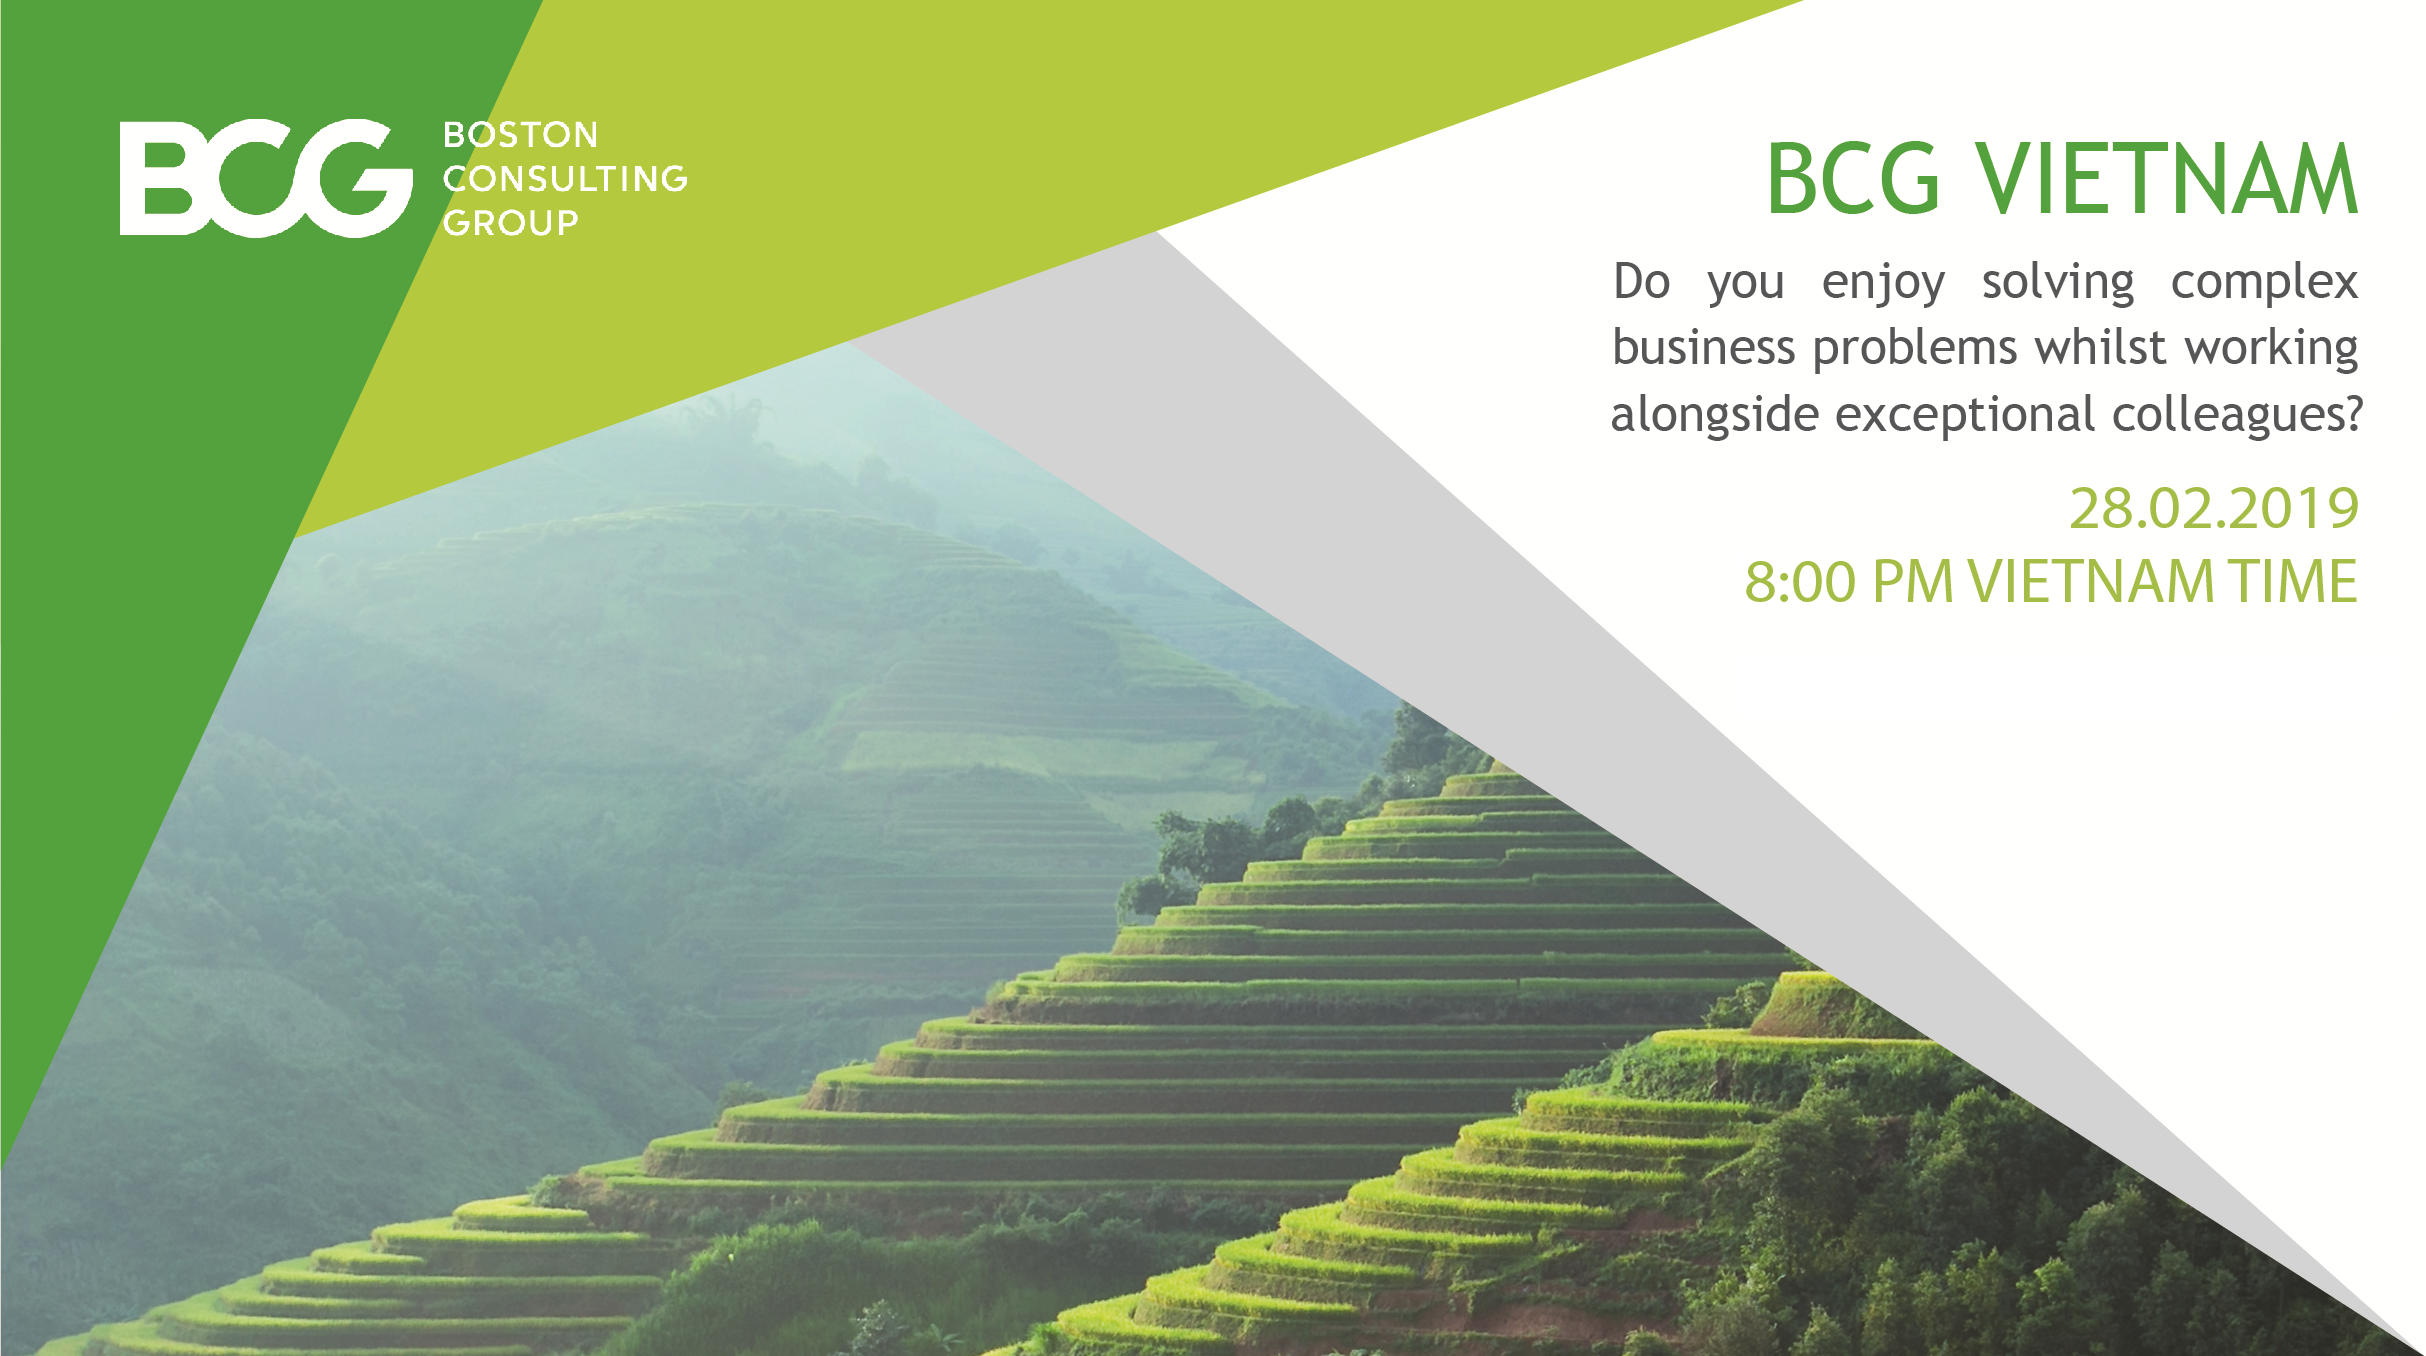 BCG Vietnam Webinar Connection Event. February 28, 2019.